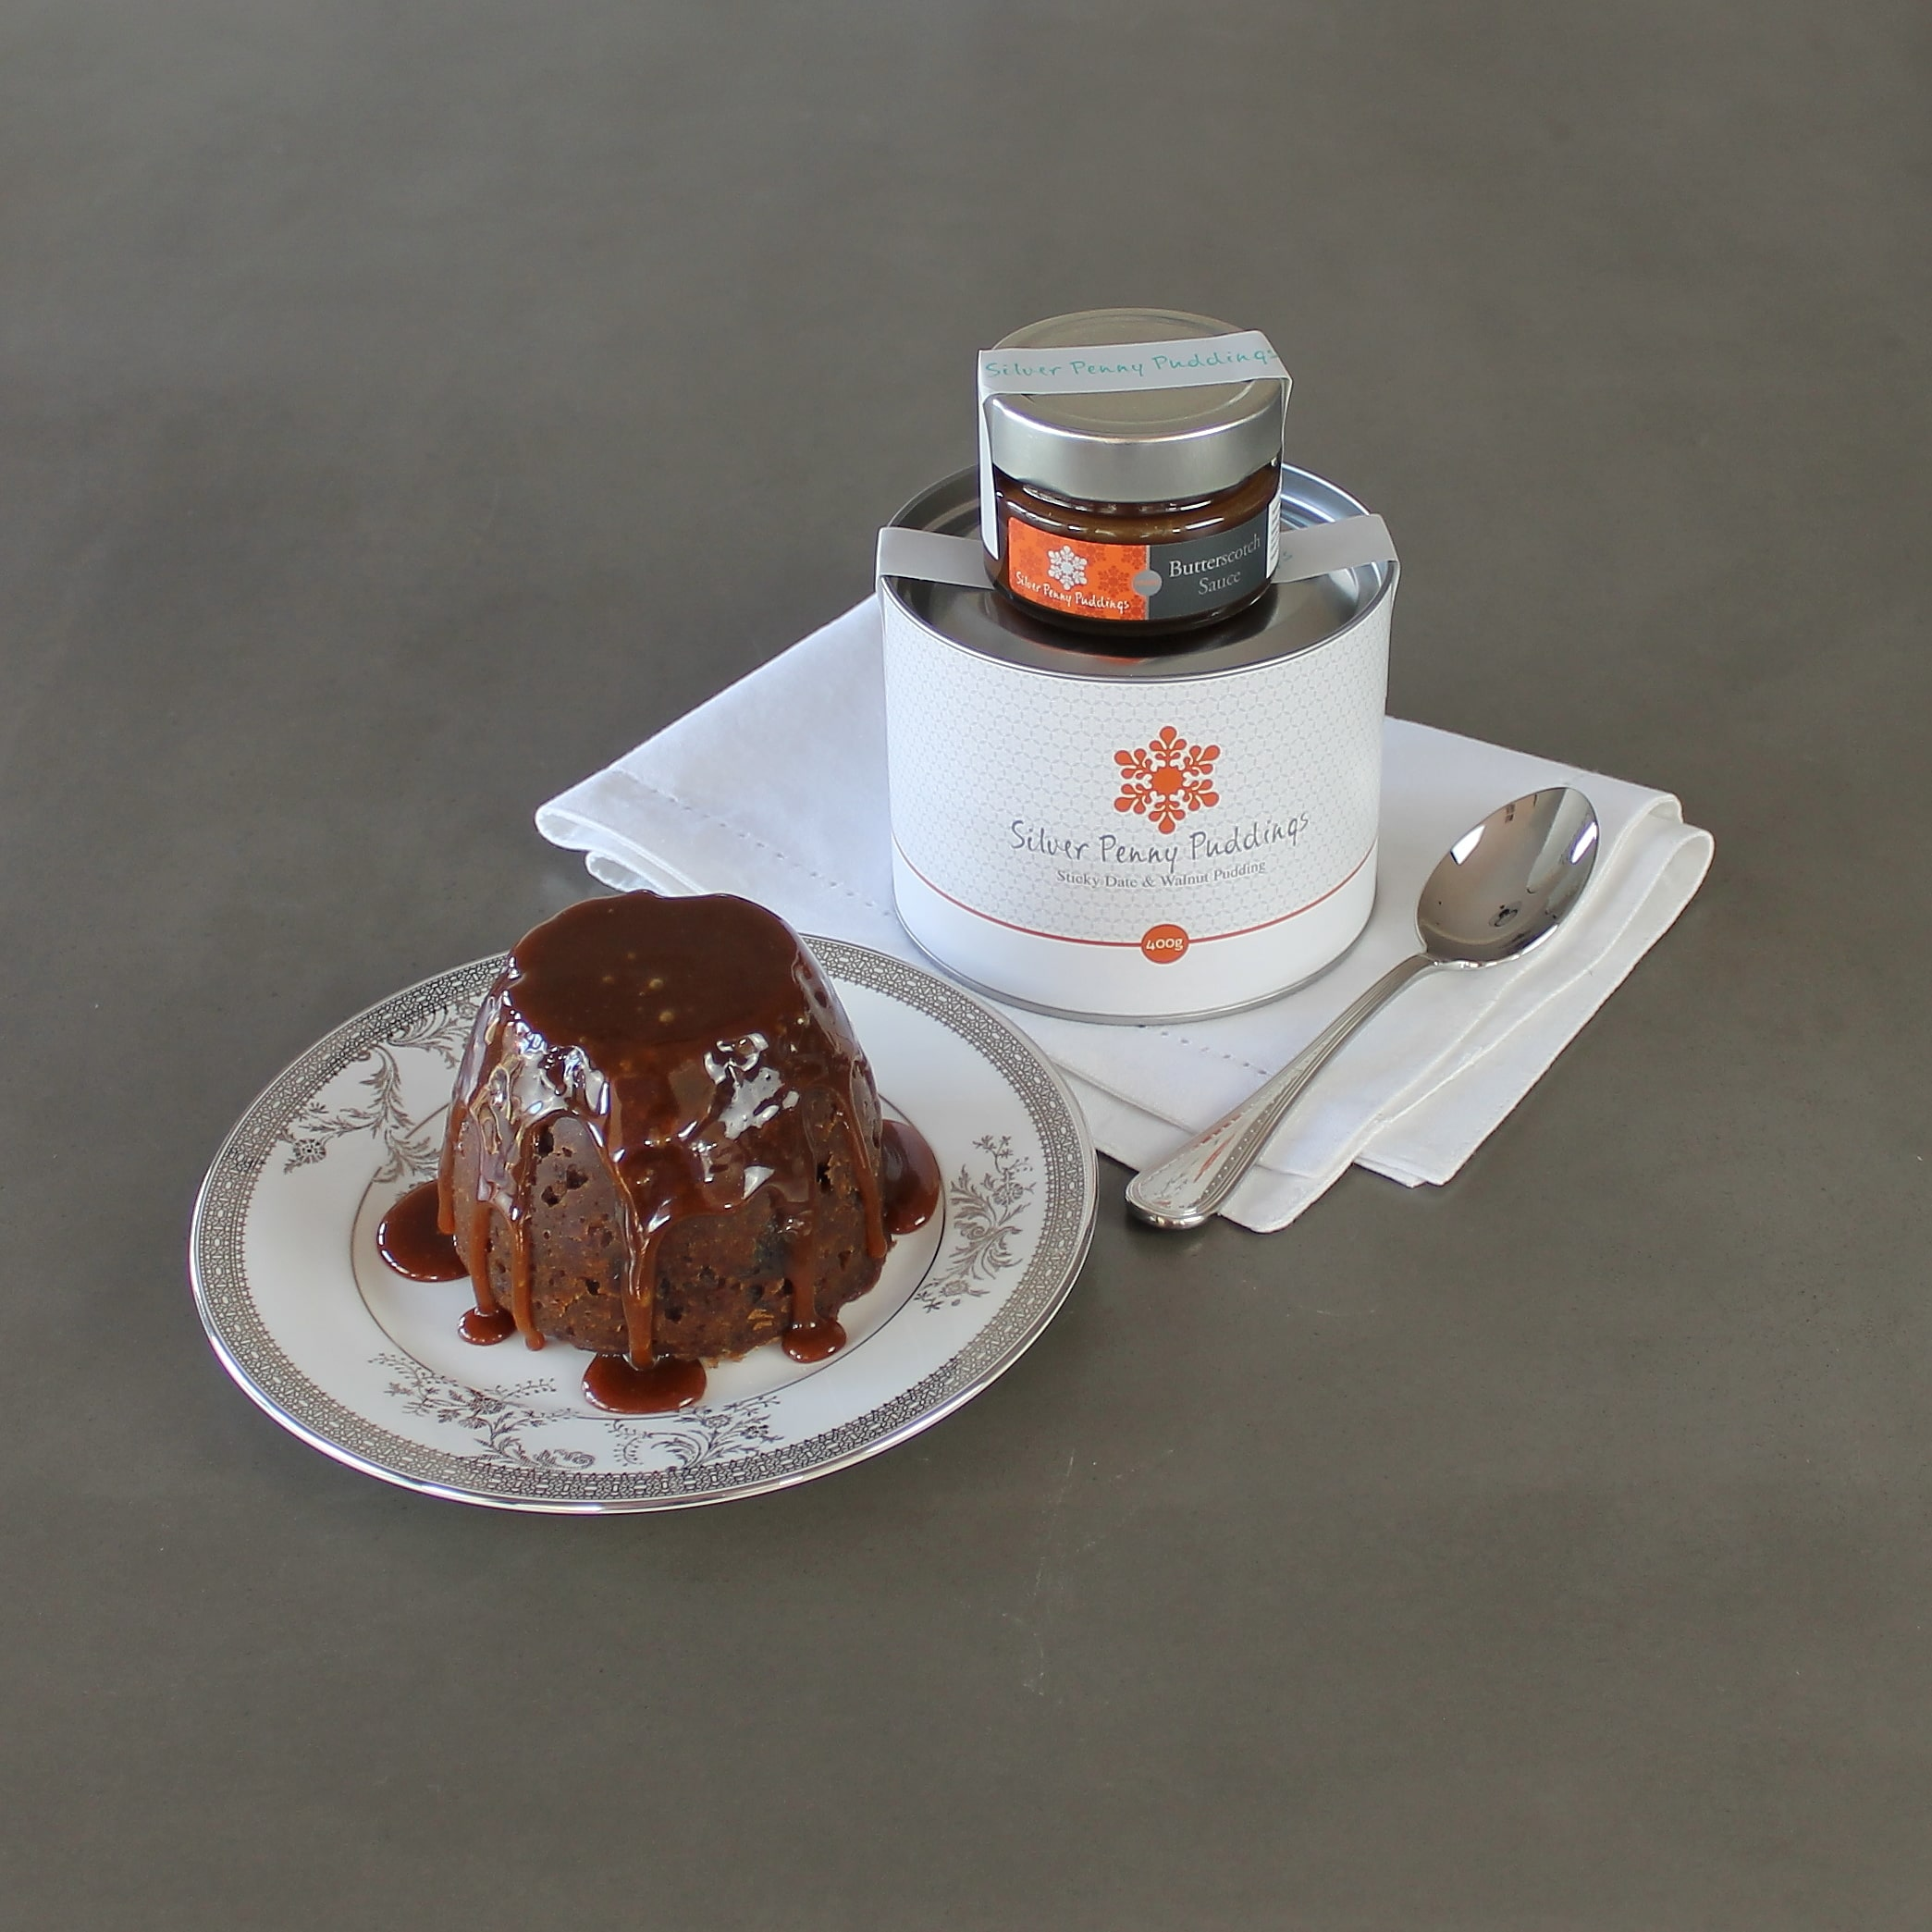 Silver Penny Puddings Sticky Date & Walnut Pudding